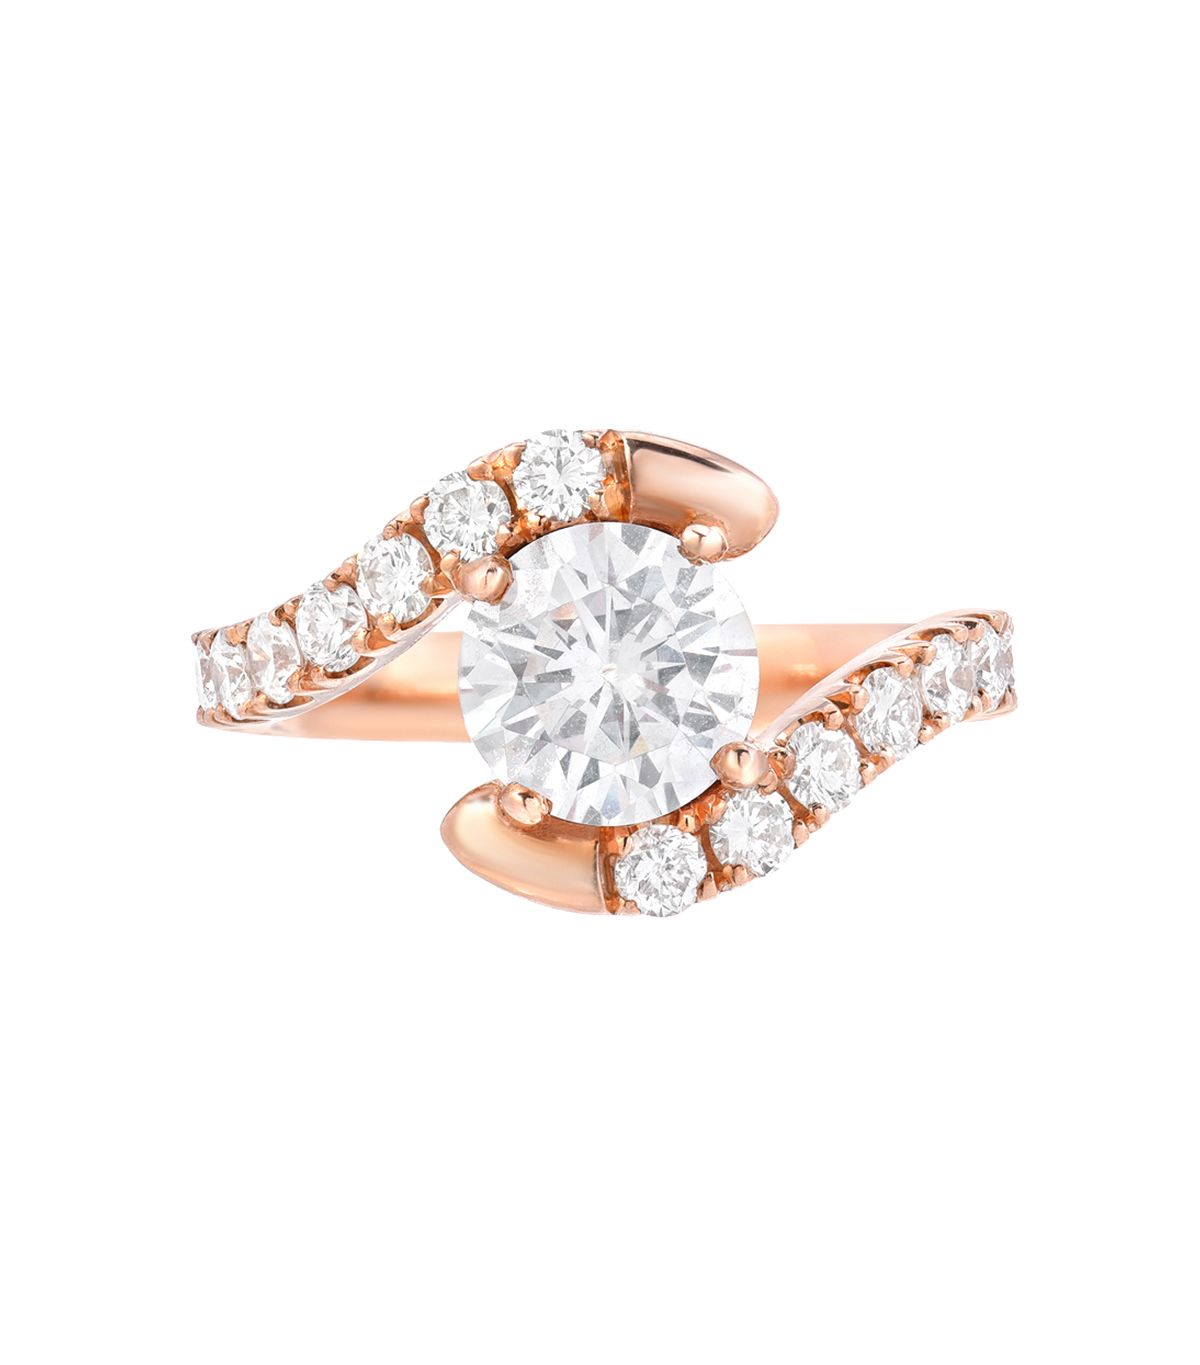 7 Things That Always Make an Engagement Ring Look Cheap 9